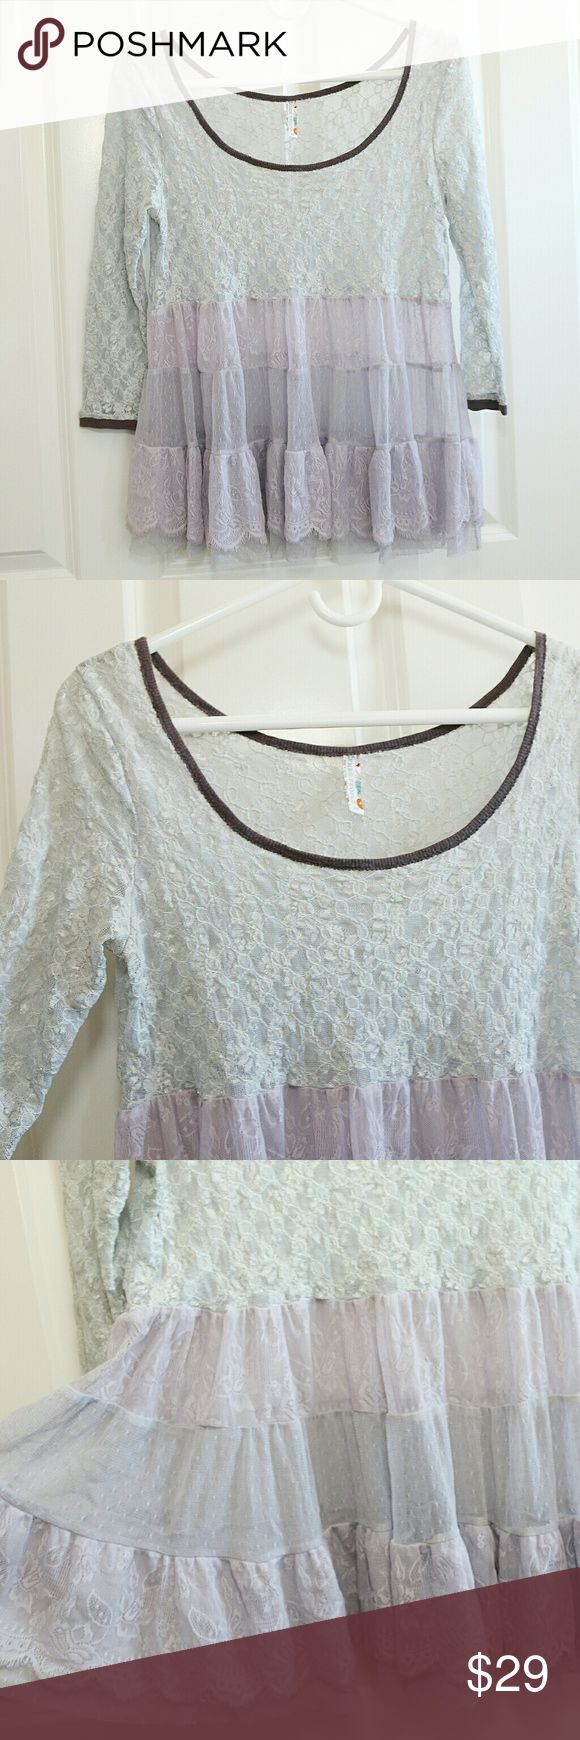 🆕Listing!  Free People Lace Festival Blouse Rare find... Free People lace festival blouse.  All lace.  3/4 sleeves.  Gray and lavender.  Size Small.  About 17 inches armpit to armpit.  About 24 inches shoulder to hem.  Nylon / Spandex / Polyester.  Gently preowned. Free People Tops Blouses